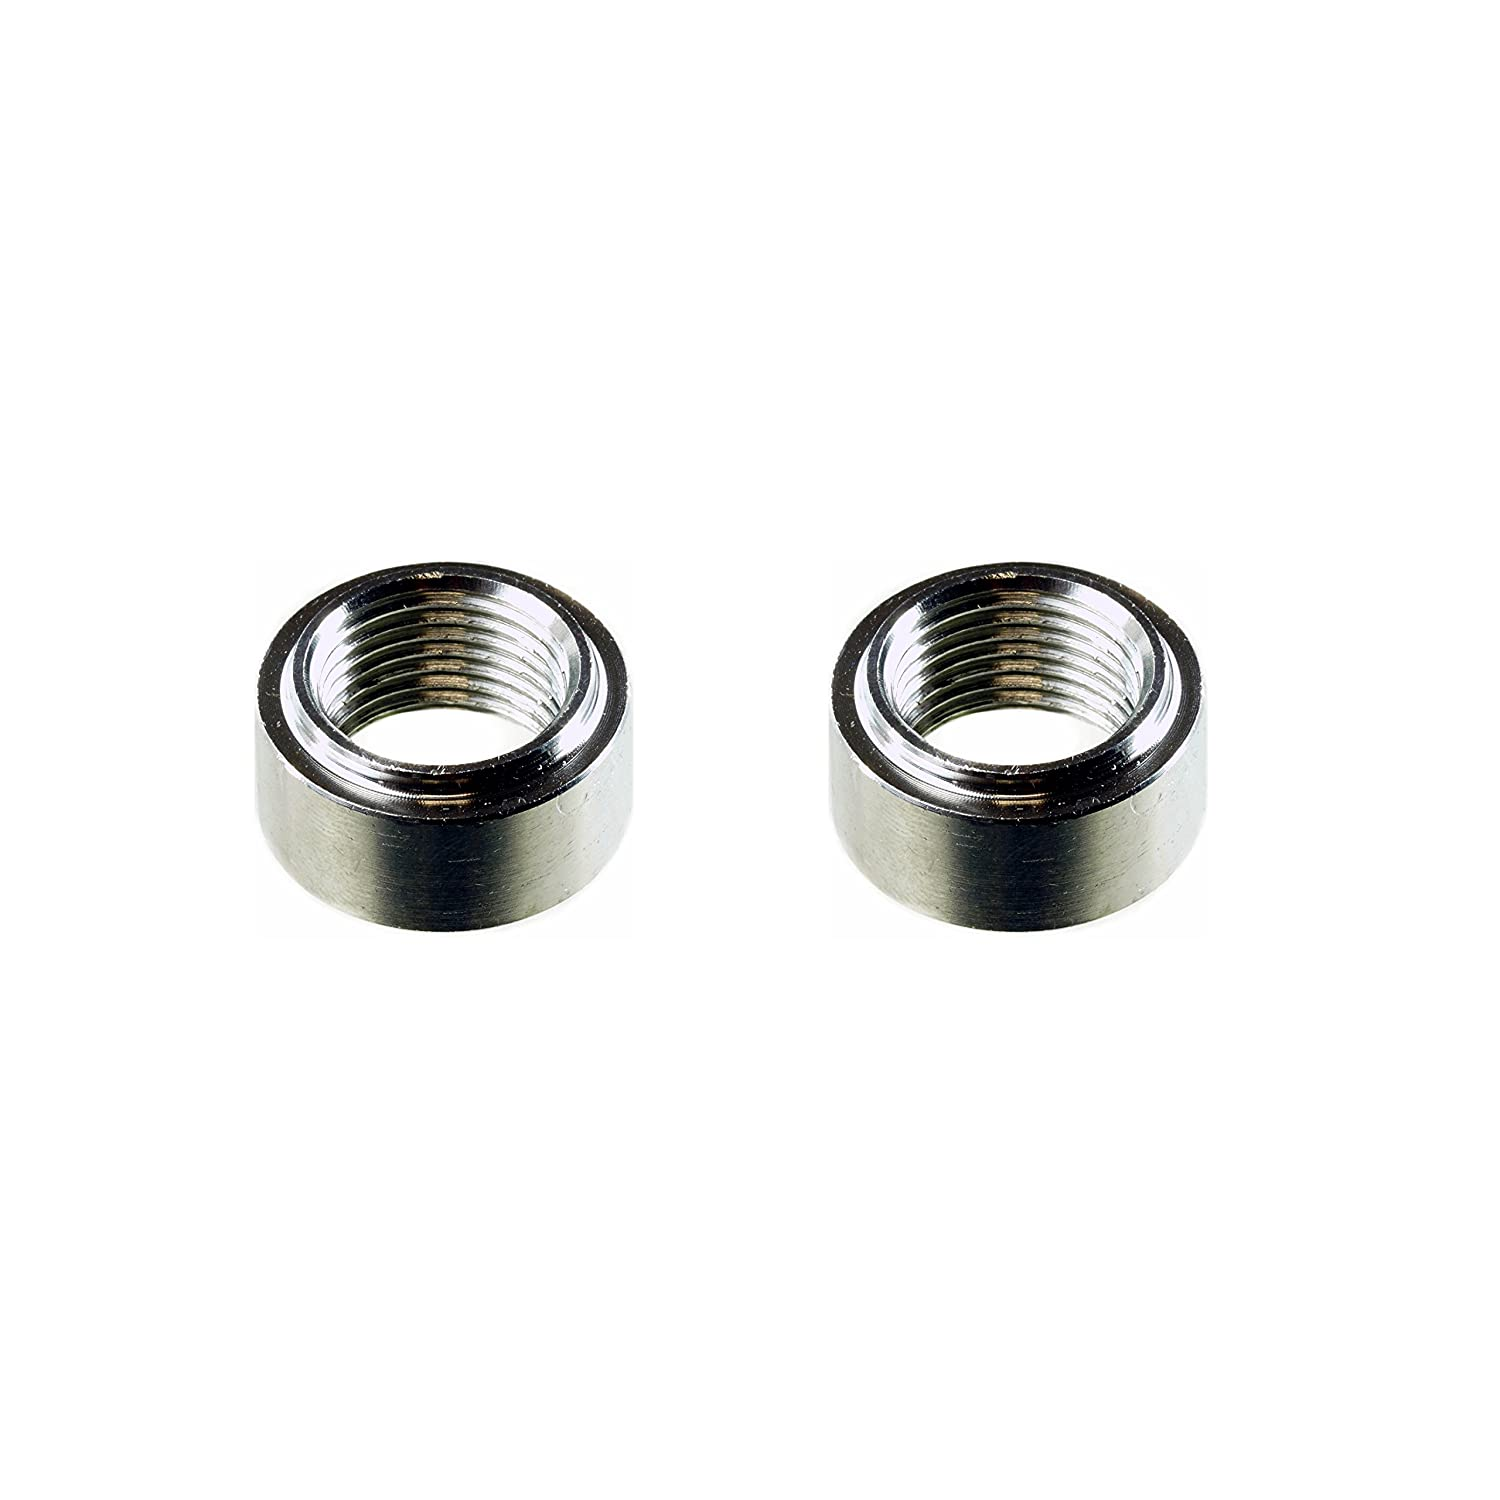 Standard - 2 Bungs, with Plug CarXX O2 Weld Bung Stainless Steel for Oxygen Sensor M18x1.5